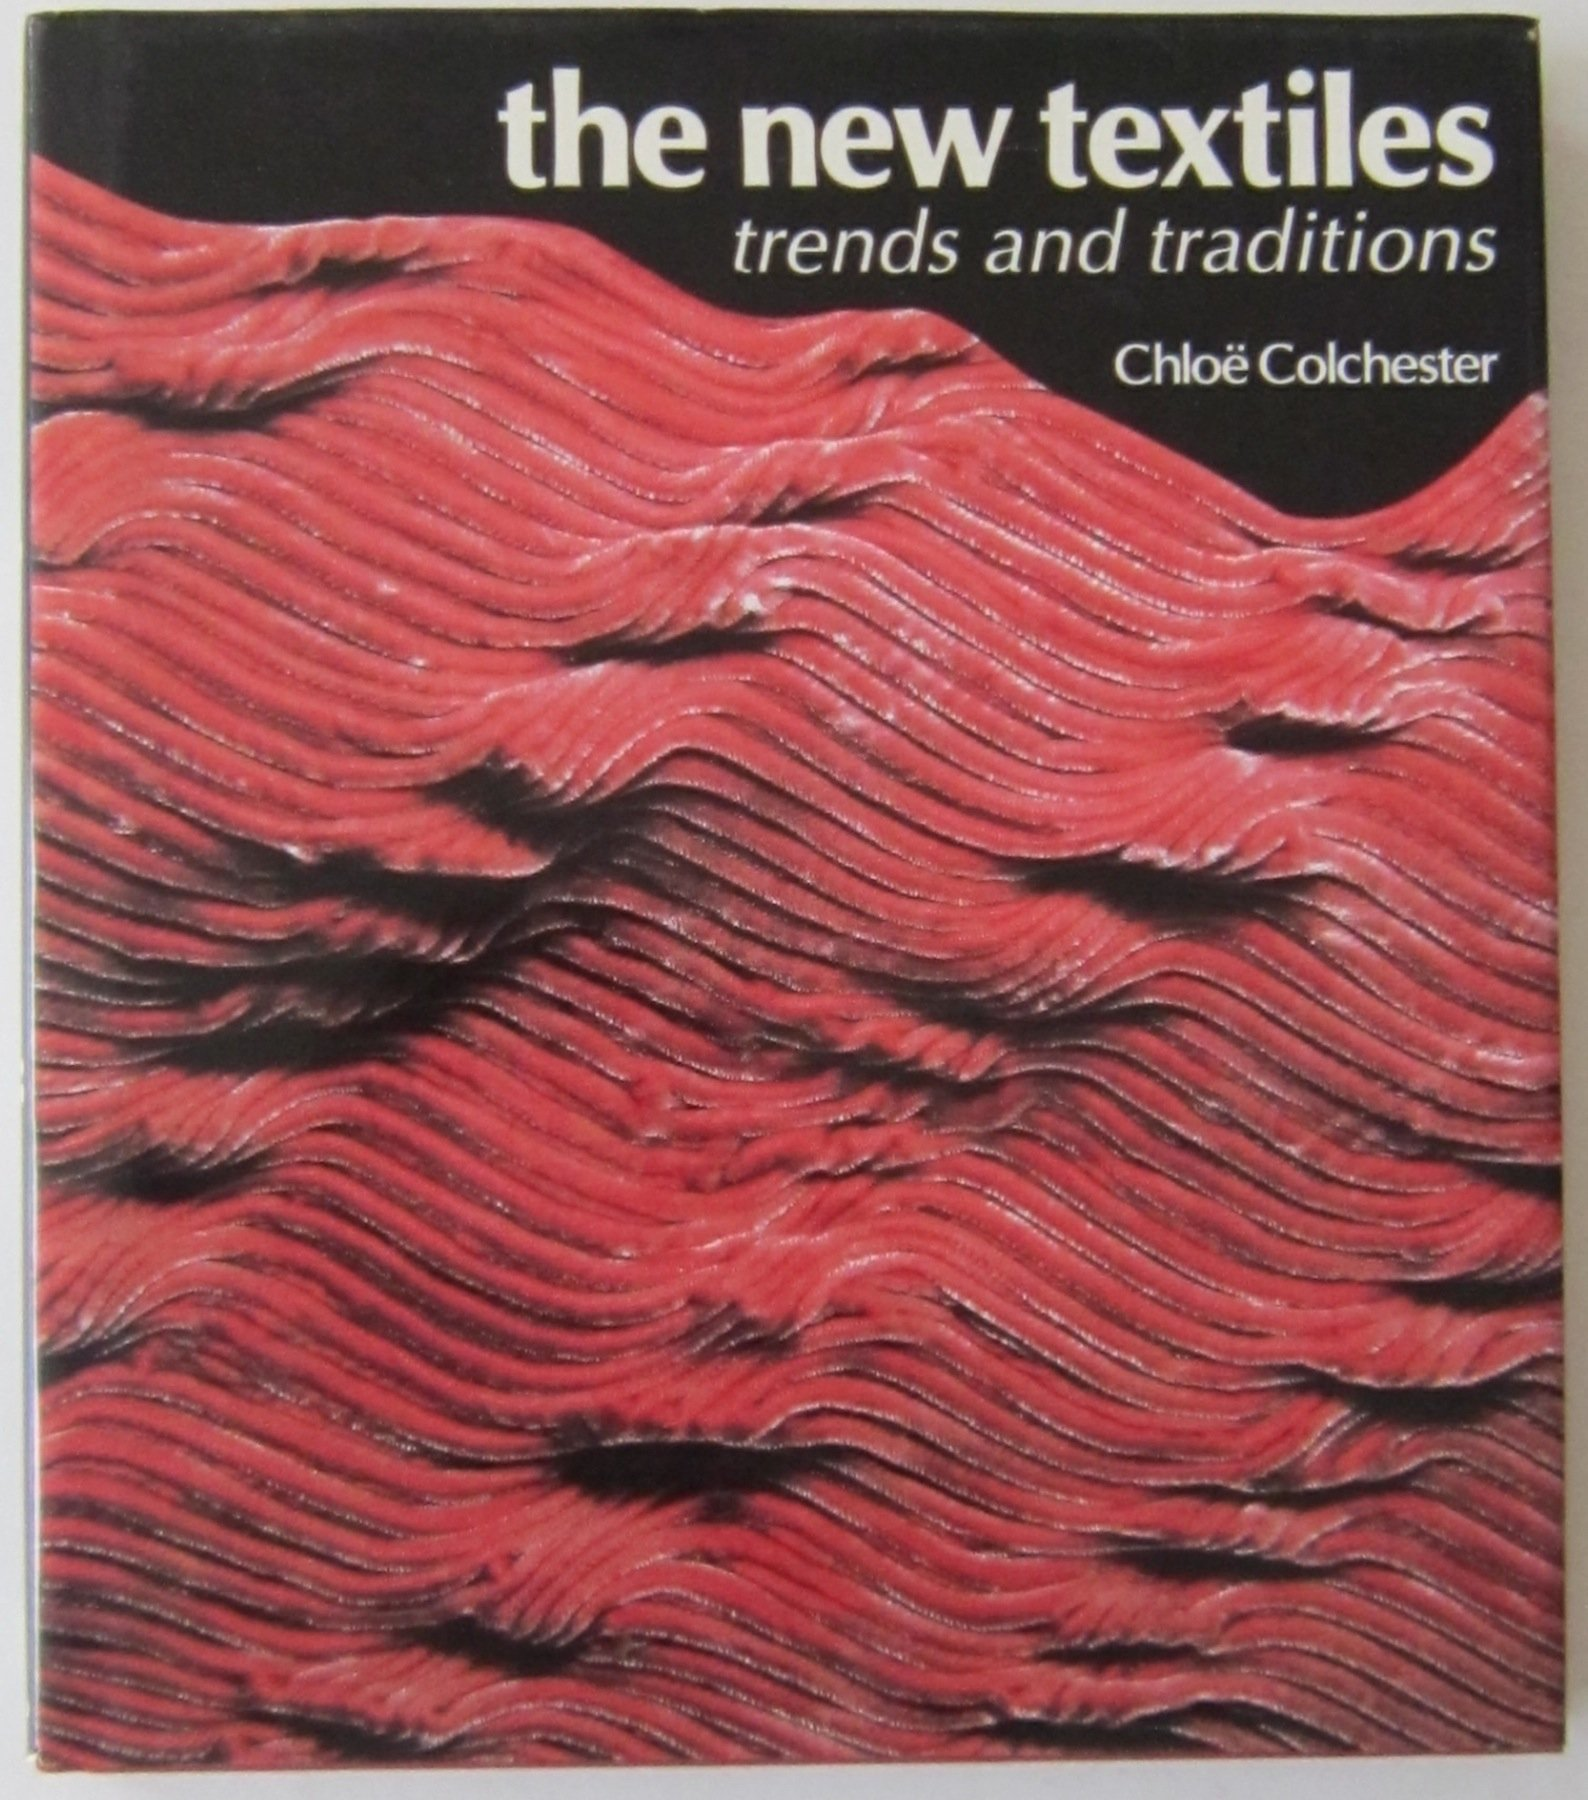 The New Textiles: Trends and Traditions